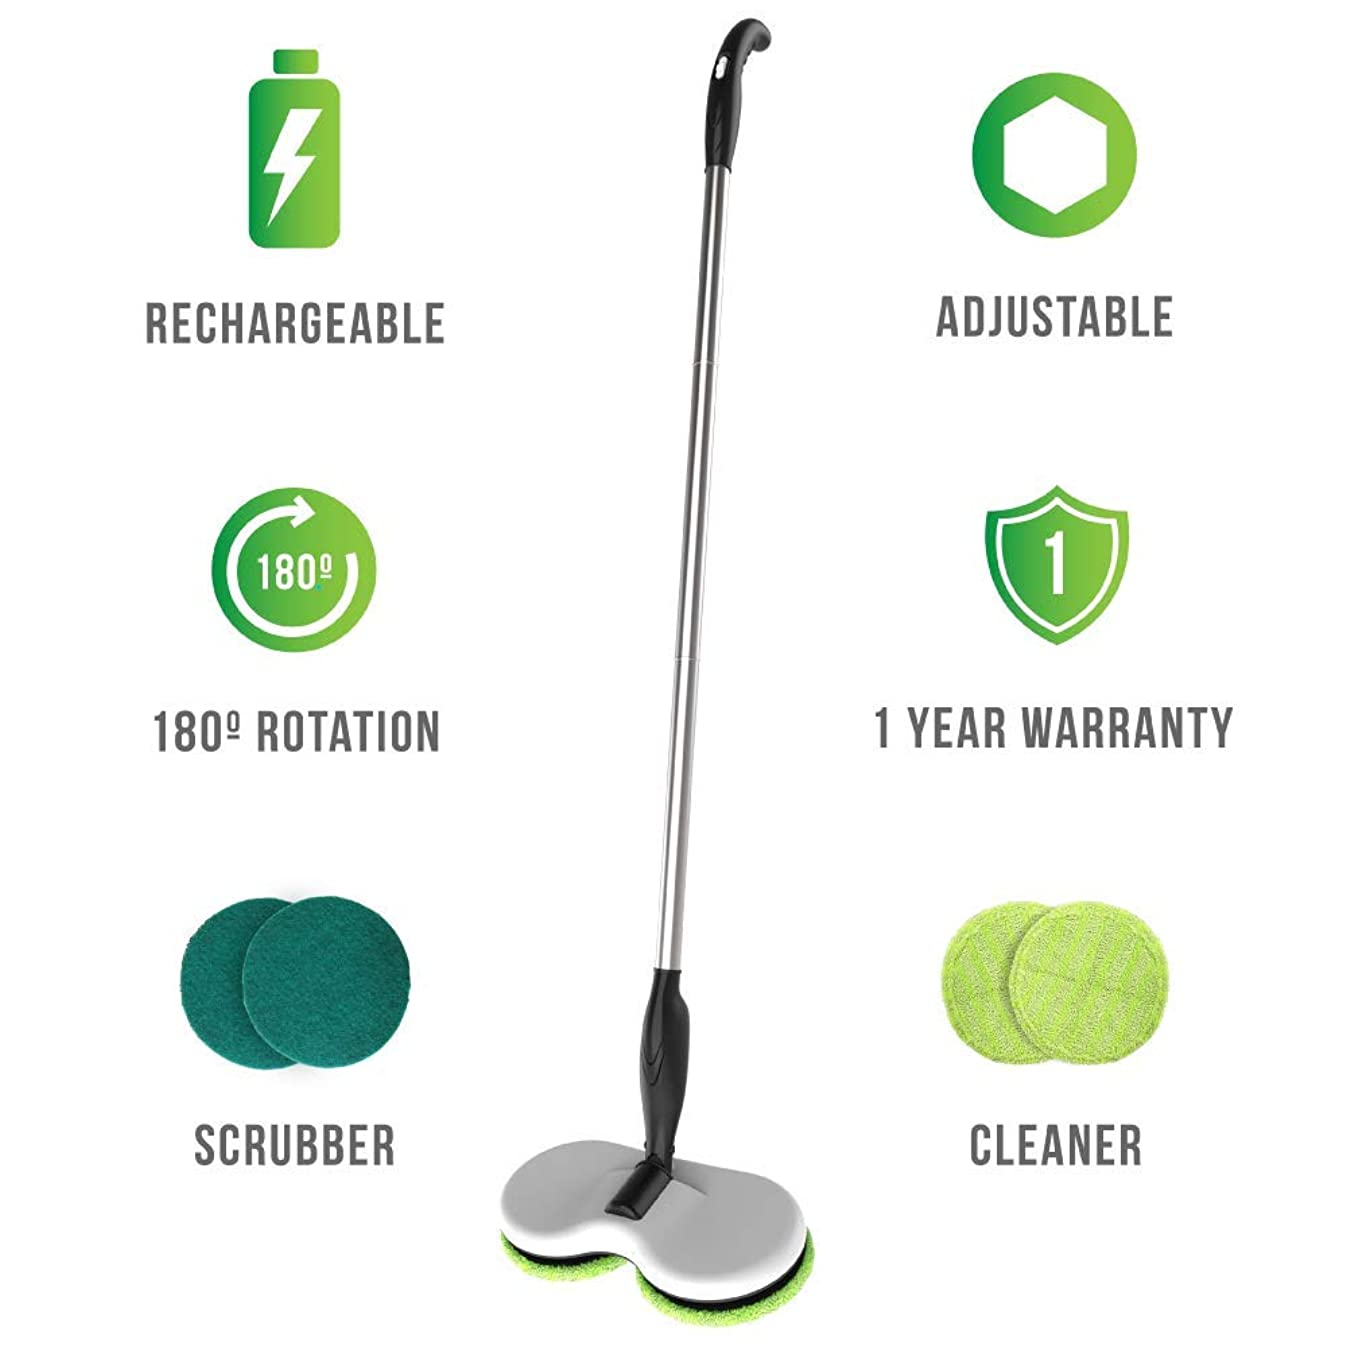 Gladwell Cordless Rechargeable Electric Mop - Floor Cleaner + Scrubber Dual Head Spin Rotating Design 3-in-1 Extendable Handle For Wood Tile Marble Stone Vinyl and Laminated Flooring + 1 Year warranty